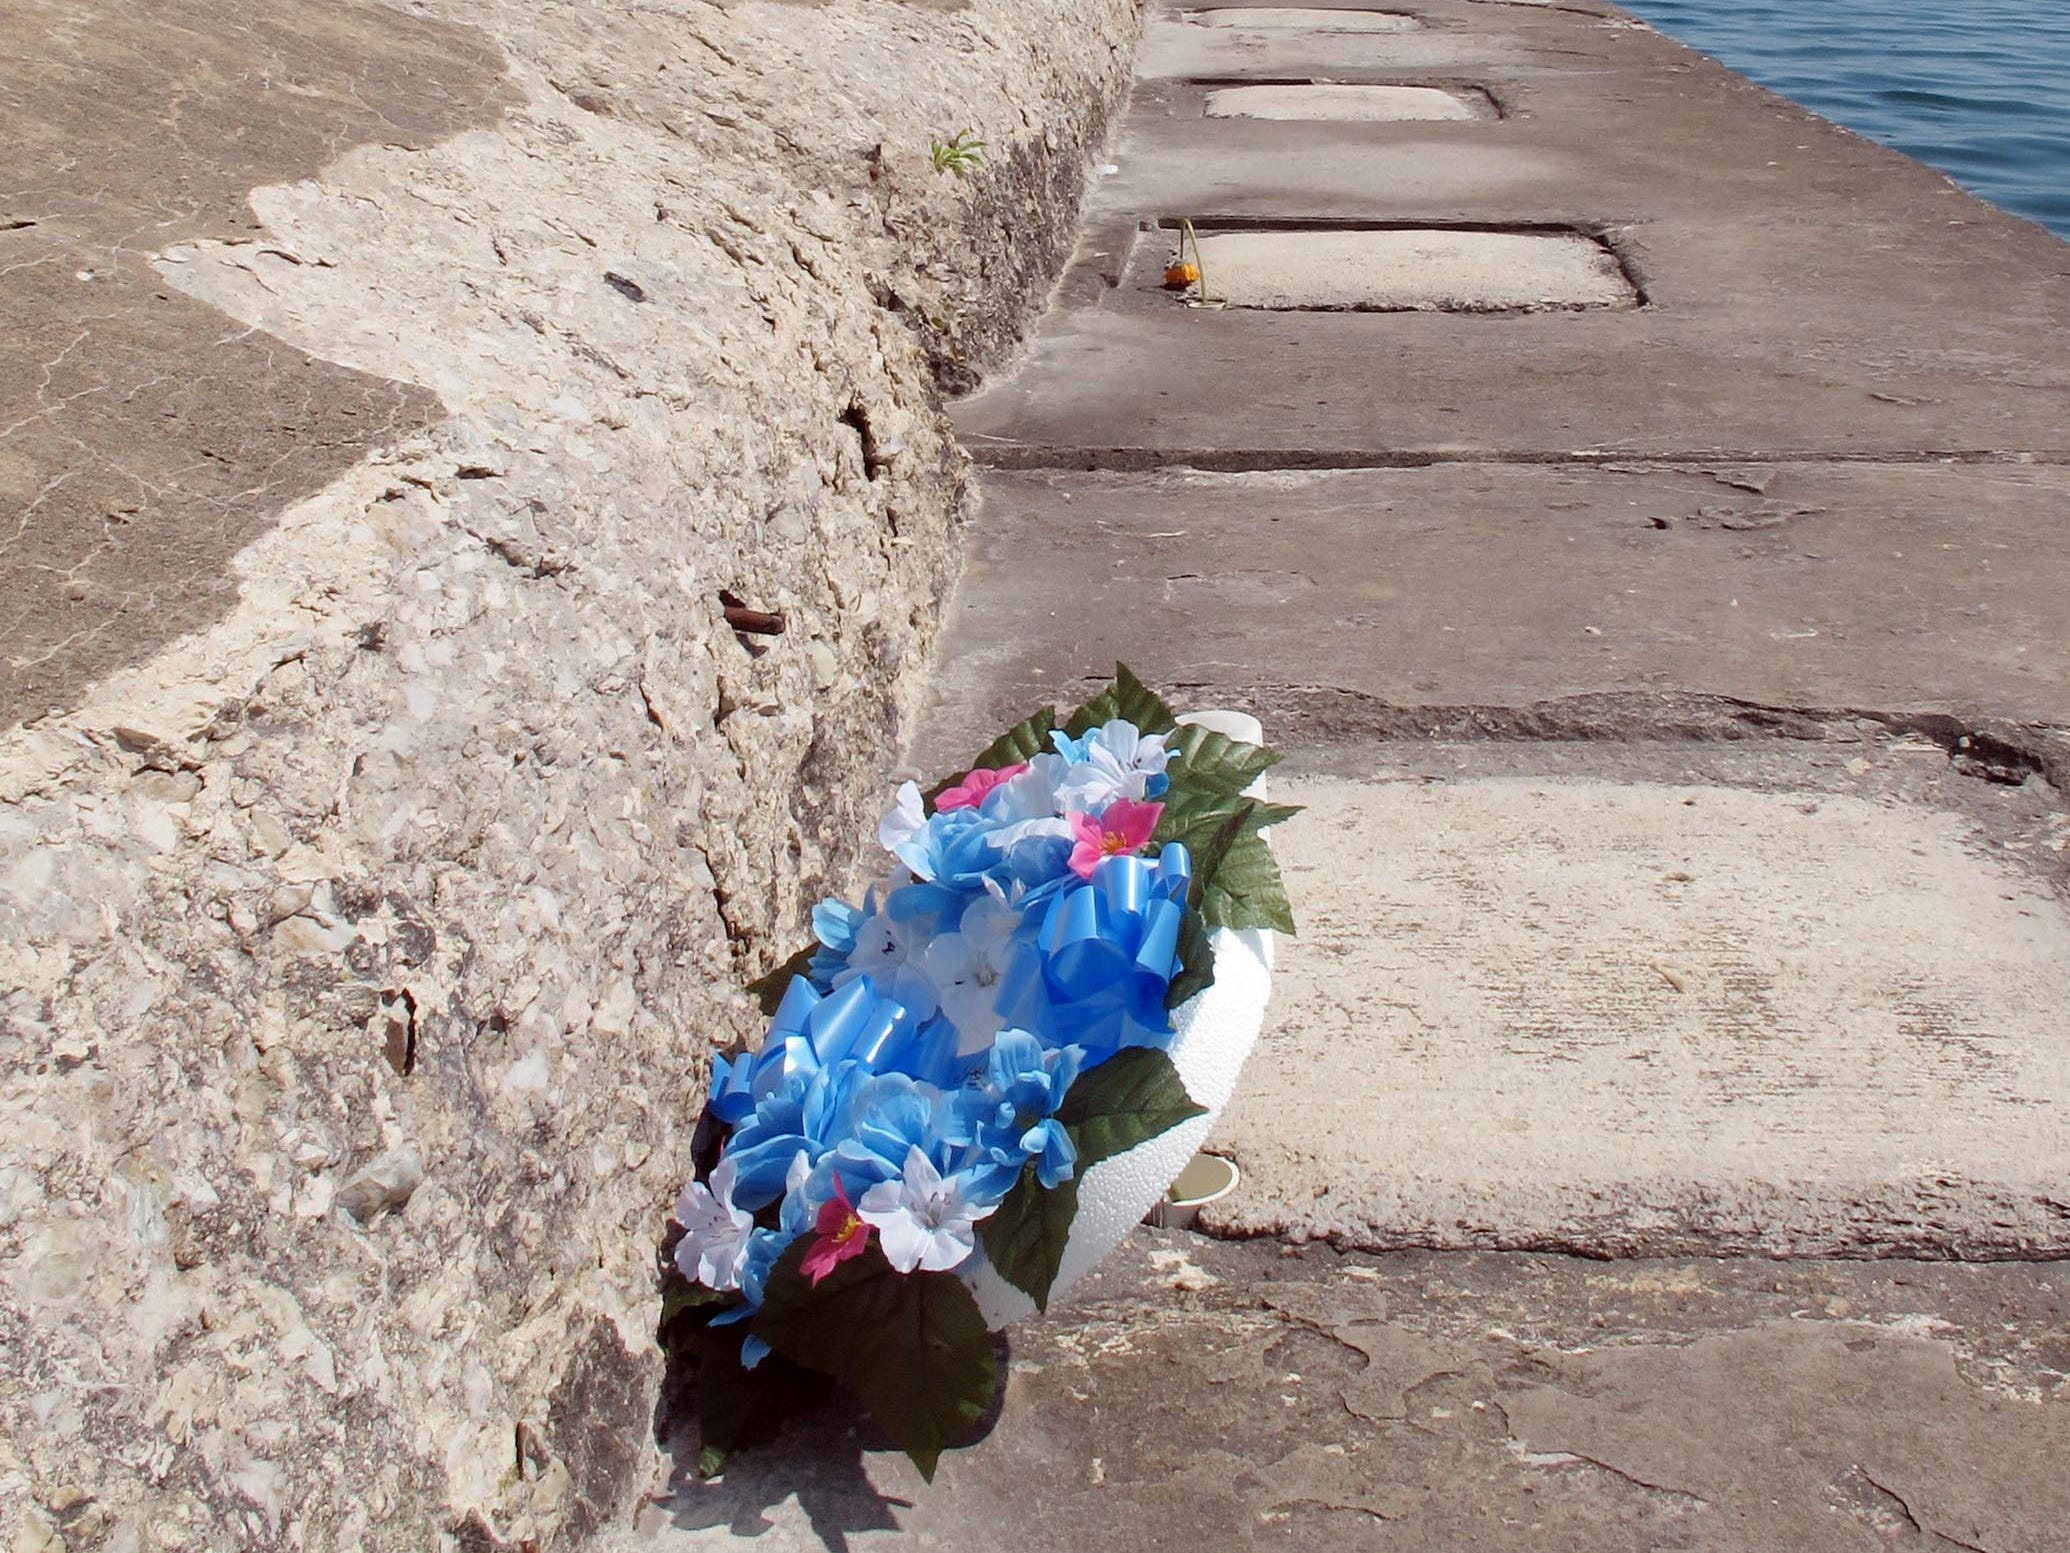 A memorial appears on North Pier Aug. 14, 2012, in memory of David Diener, 21, and Kurt K. Netzer, 37, who lost their lives after being swept off of North Pier Aug. 10, 2012, in Sheboygan, Wis.  FILE PHOTO